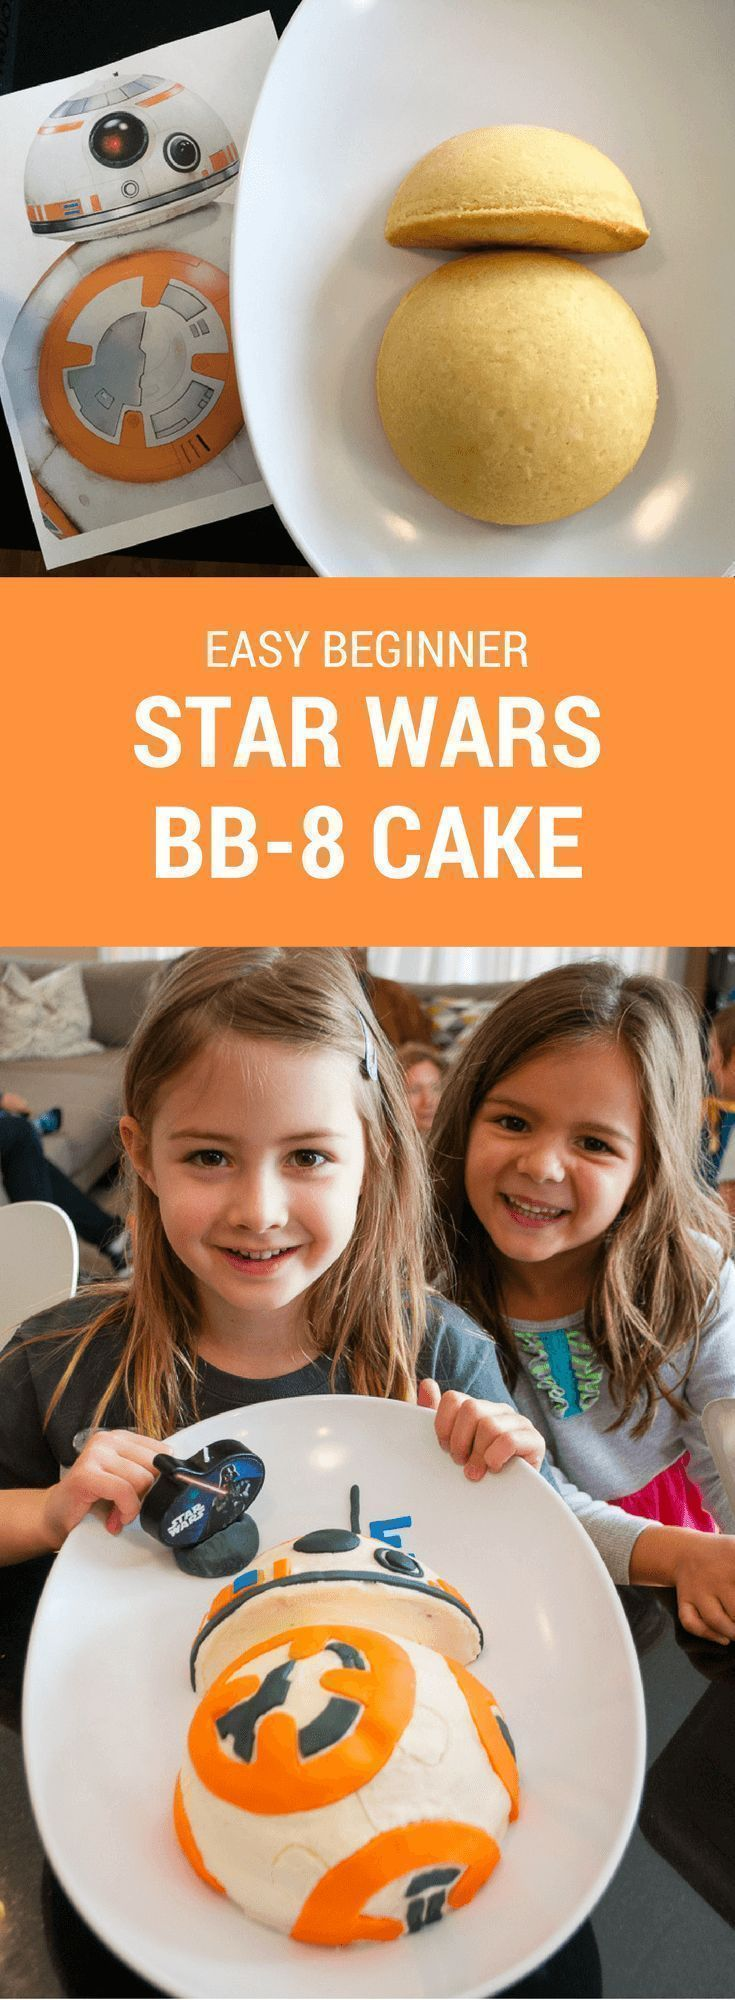 How to make an easy Star Wars BB-8 birthday cake for a Star Wars birthday party. Just print my free BB-8 pattern and follow the easy steps. Great for beginners! #starwars #bb8 #cake #party #birthdaycake